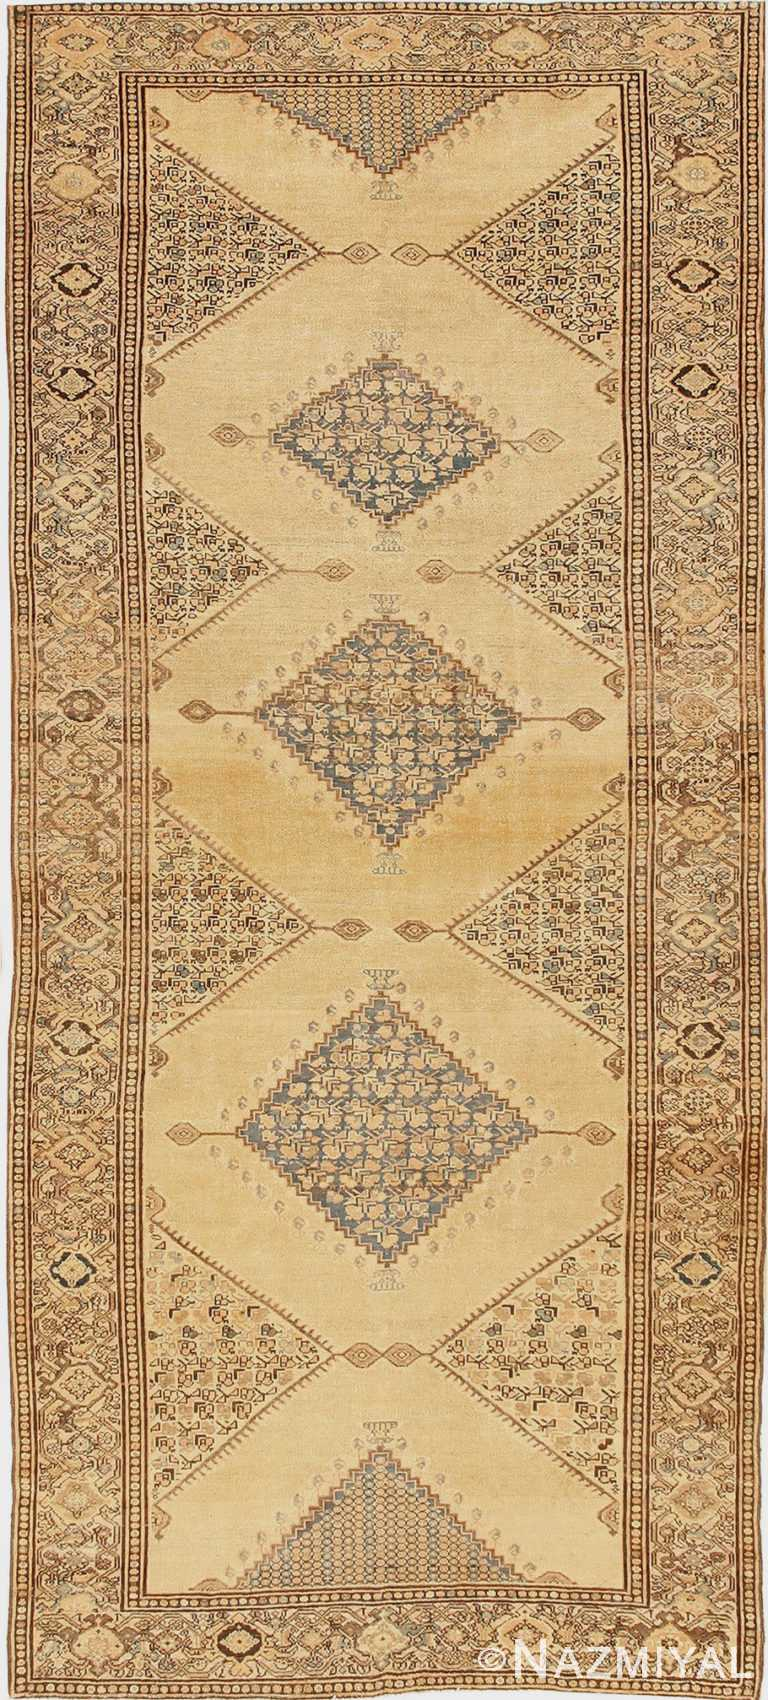 Antique Persian Malayer Rug 42462 by Nazmiyal Antique Rugs